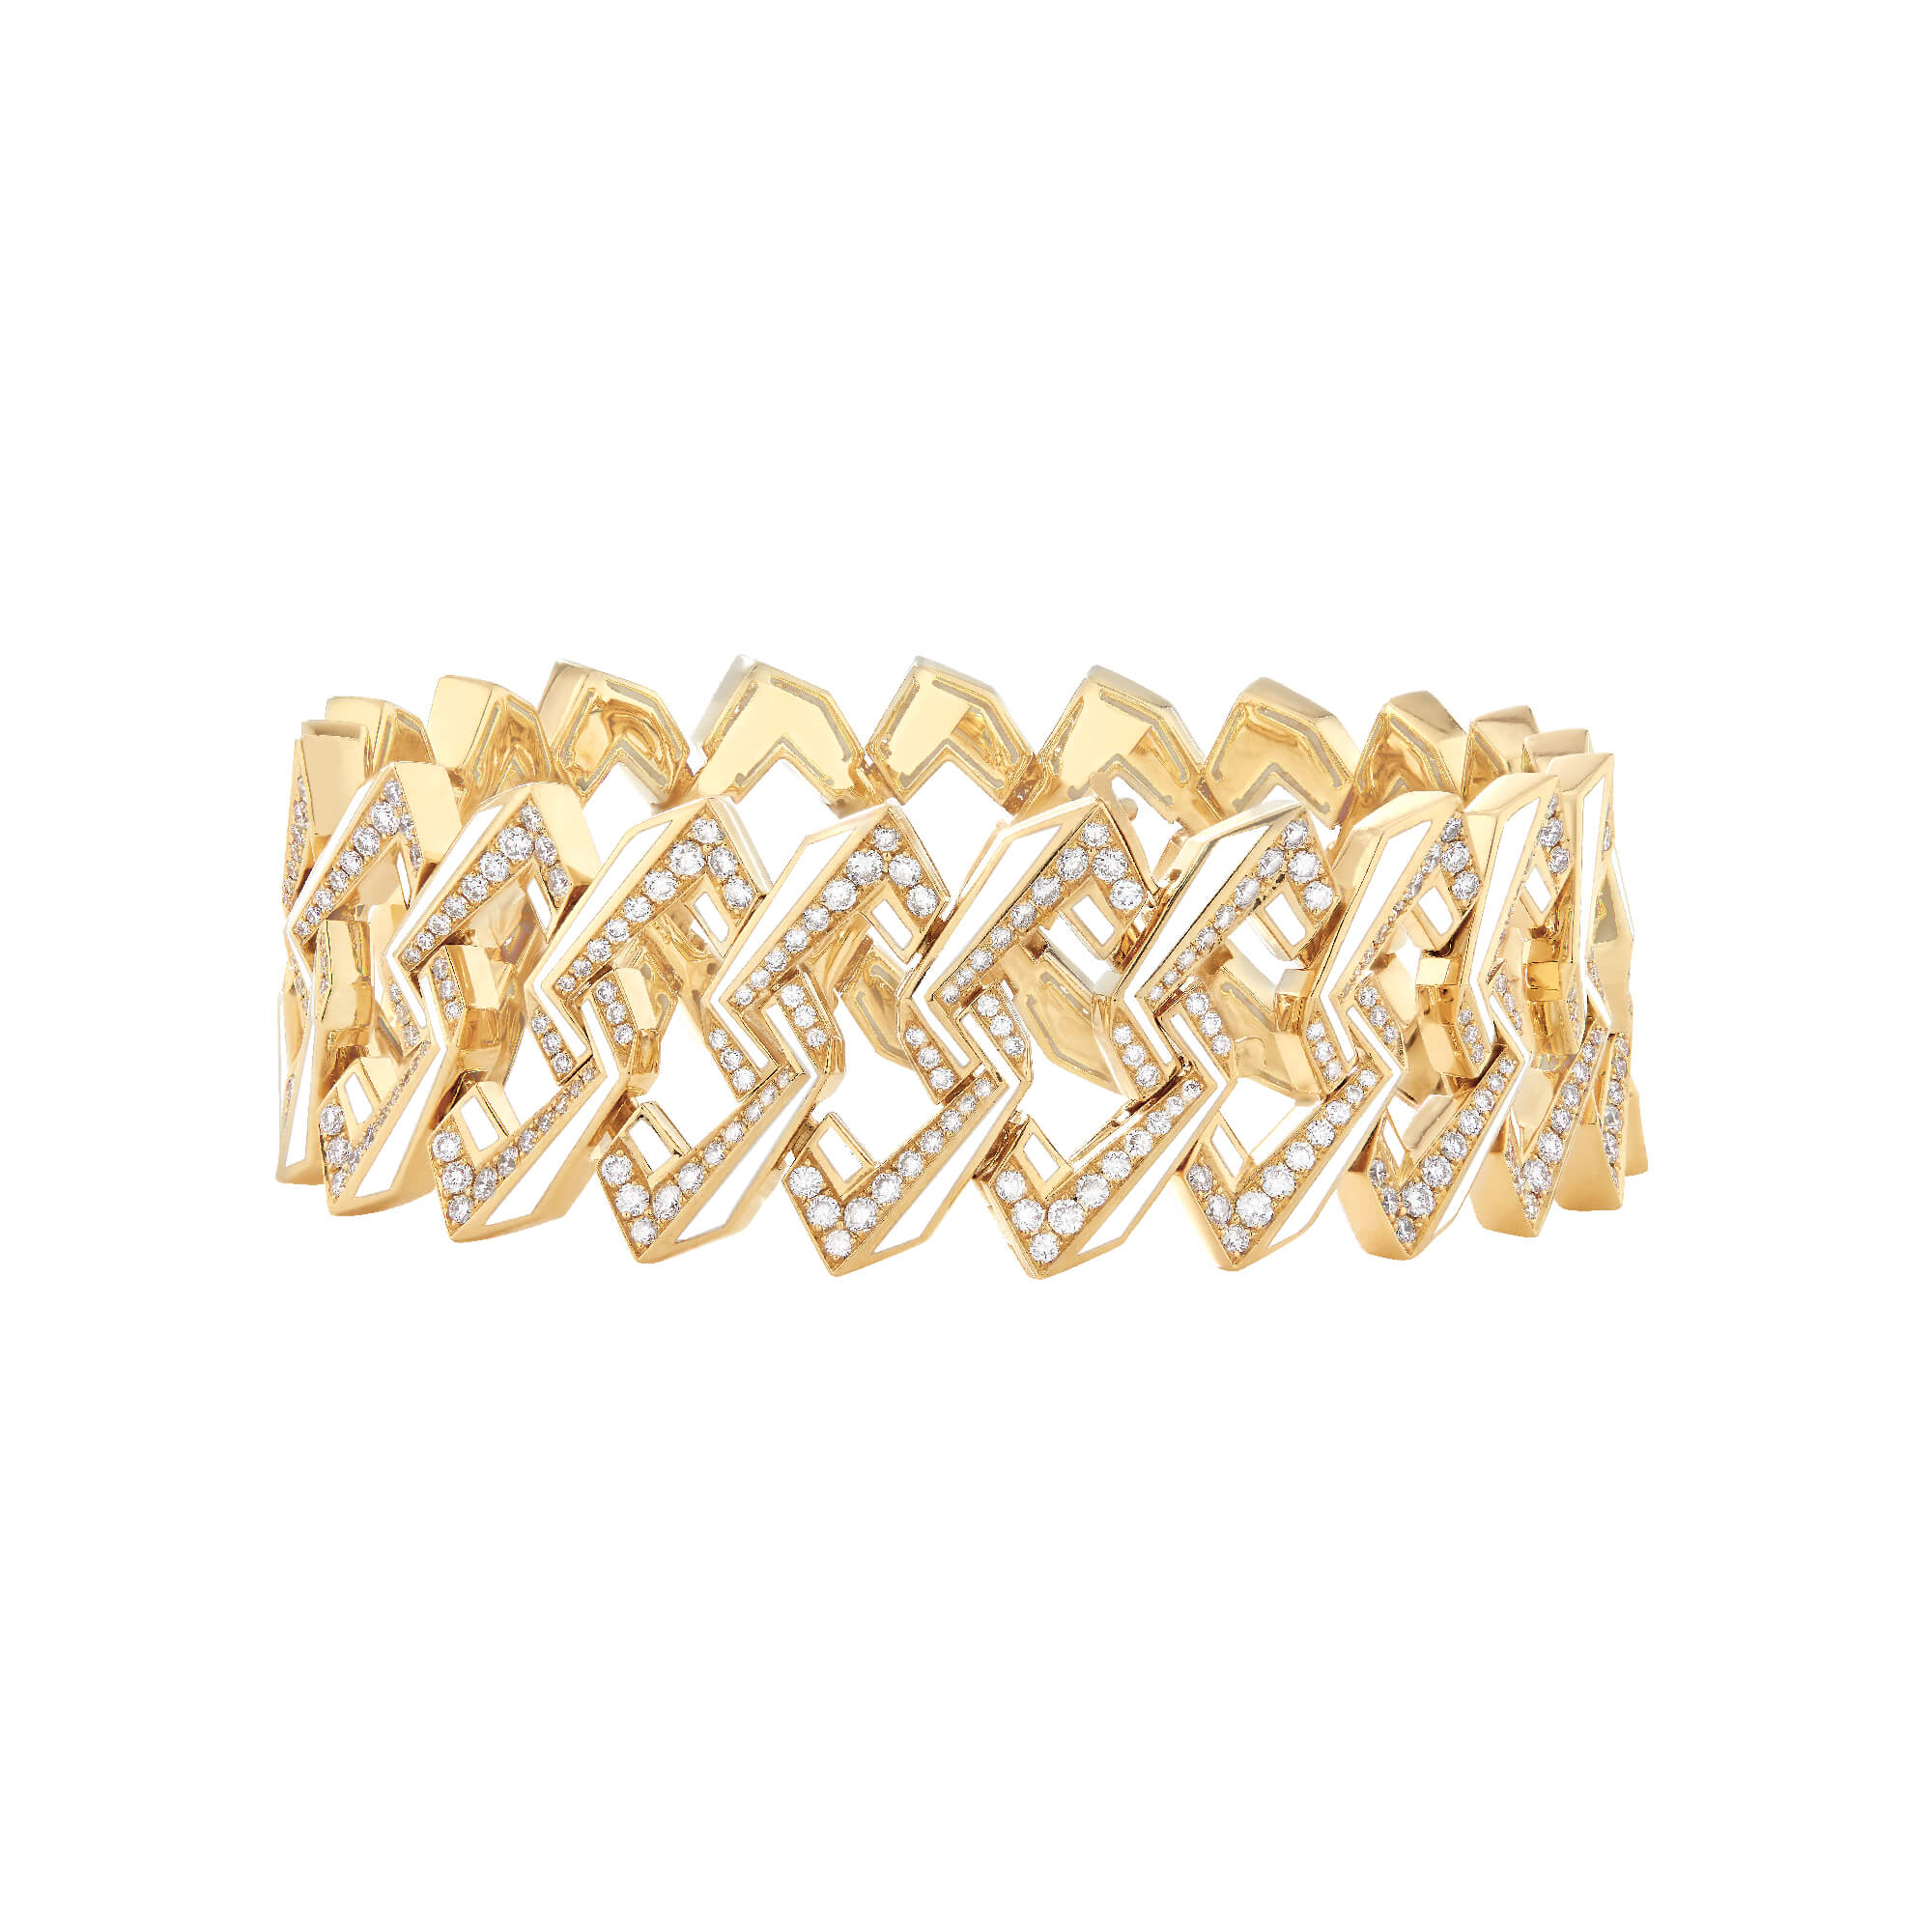 Yellow Gold and Diamond Impossible Link Bracelet | Vertigo